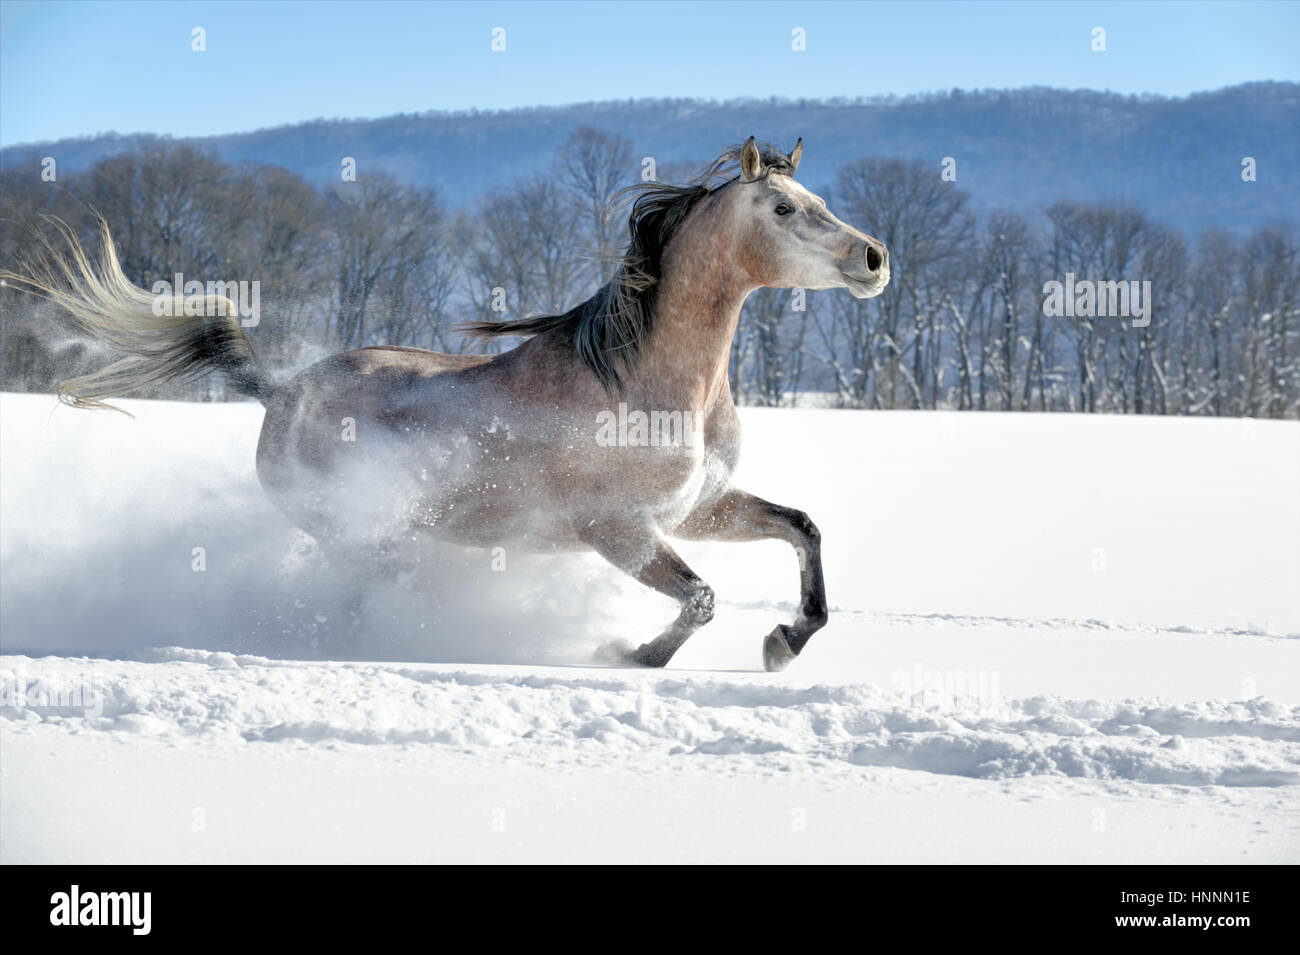 An Arabian Roan mare, a horse corralled in a farm field of fresh powder snow with a winter background of barren - Stock Image